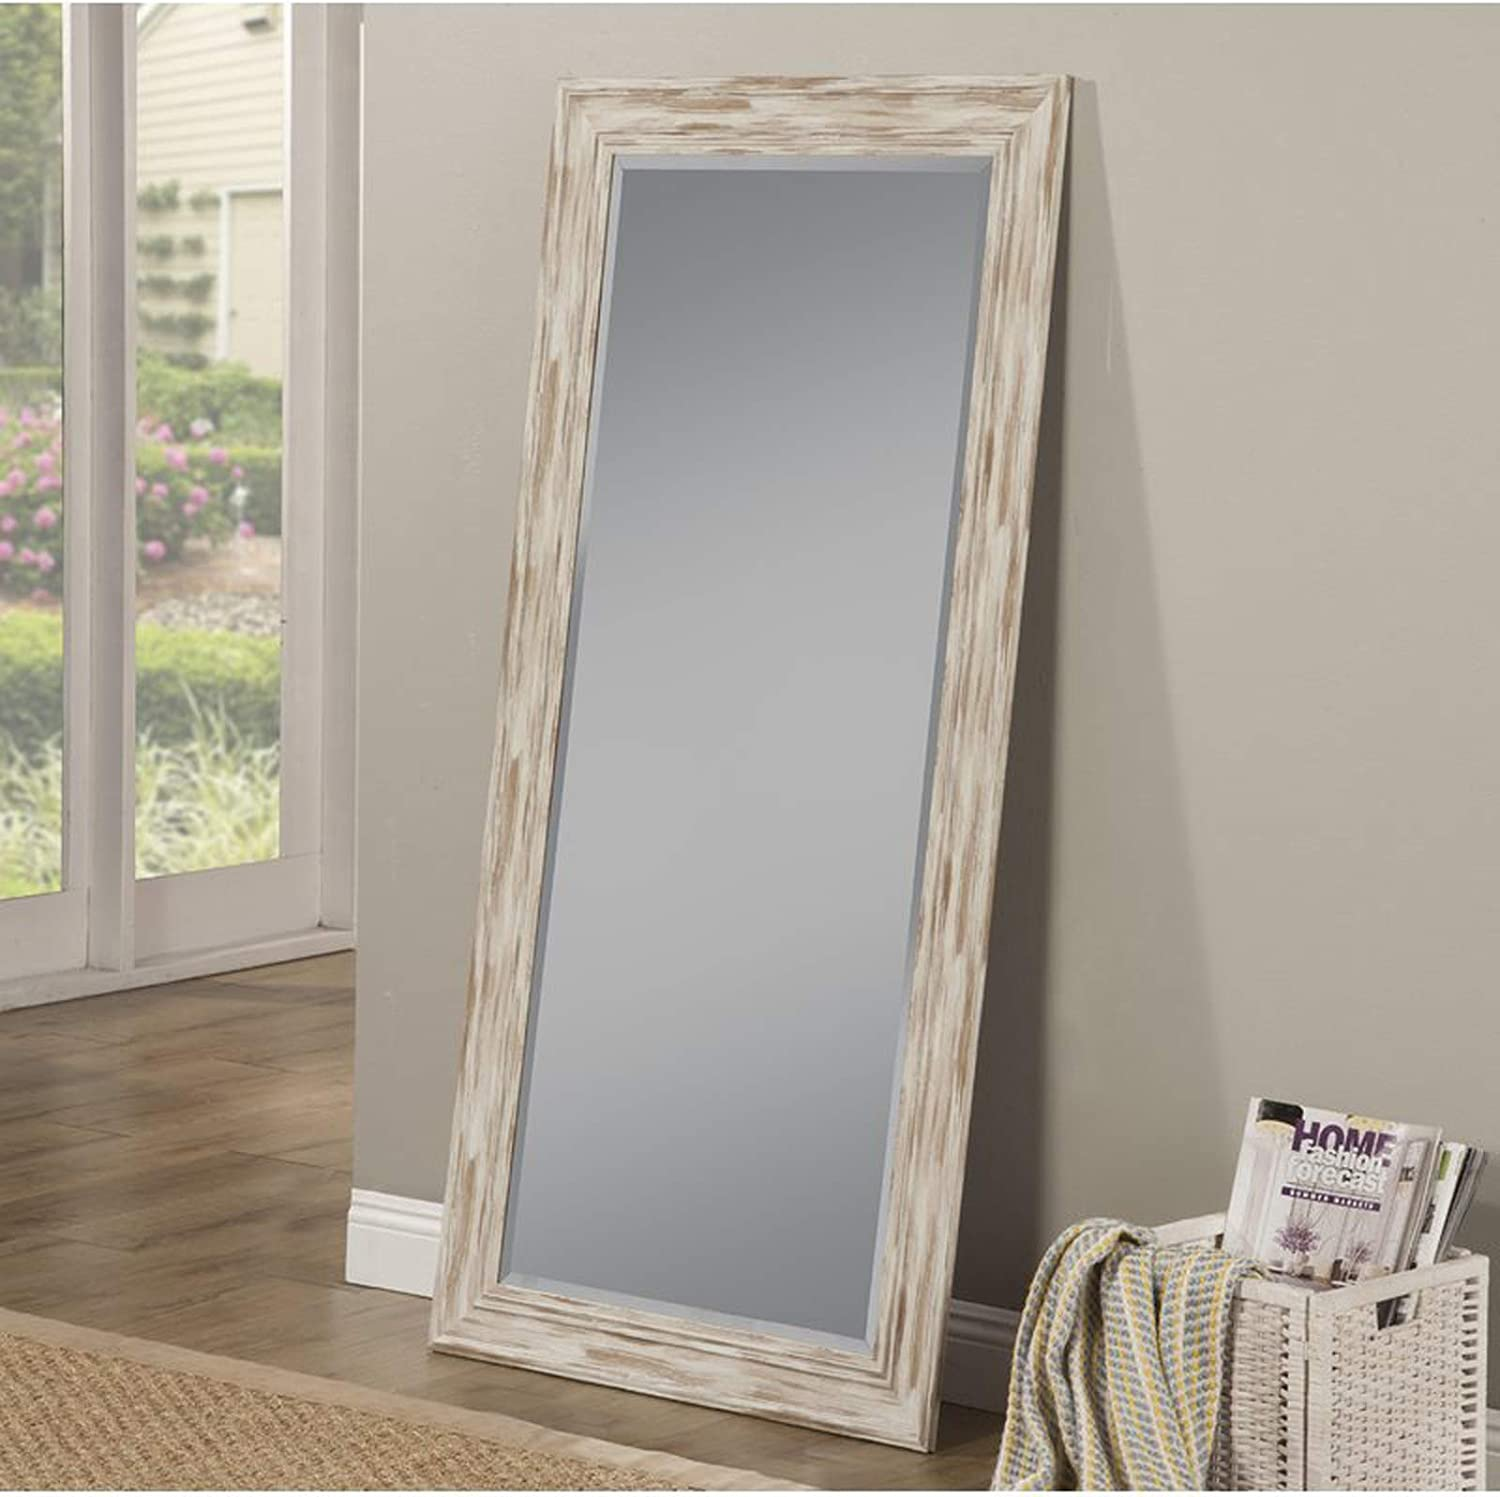 Full Length Wall Mirror Rustic Rectangular Shape Horizontal Vertical Mirror Can Be Use In Living Room Bedroom Entryway Or Bathroom Antique White Wash Amazon Co Uk Kitchen Home